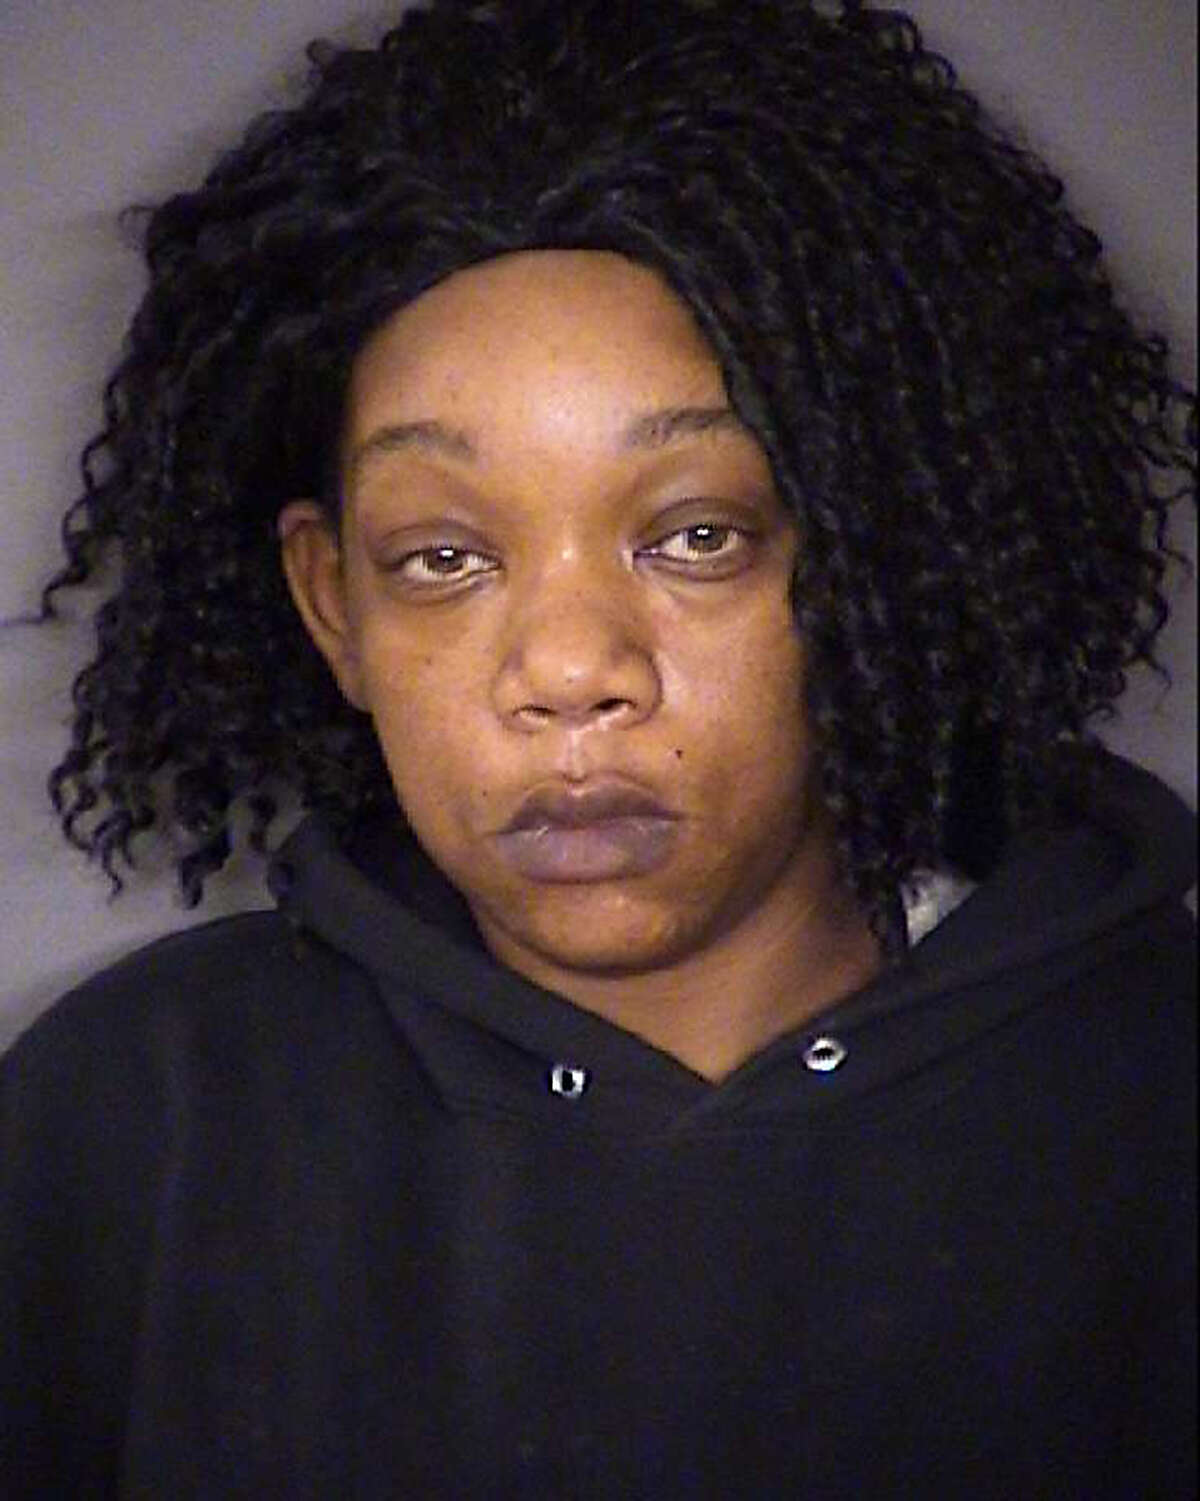 Porucha Denise Phillips, 34, the pregnant mother of the six children in the home, remained in Bexar County Jail on Saturday in lieu of $150,000 bail. She faces two felony charges on two counts of injury to a child by omission.